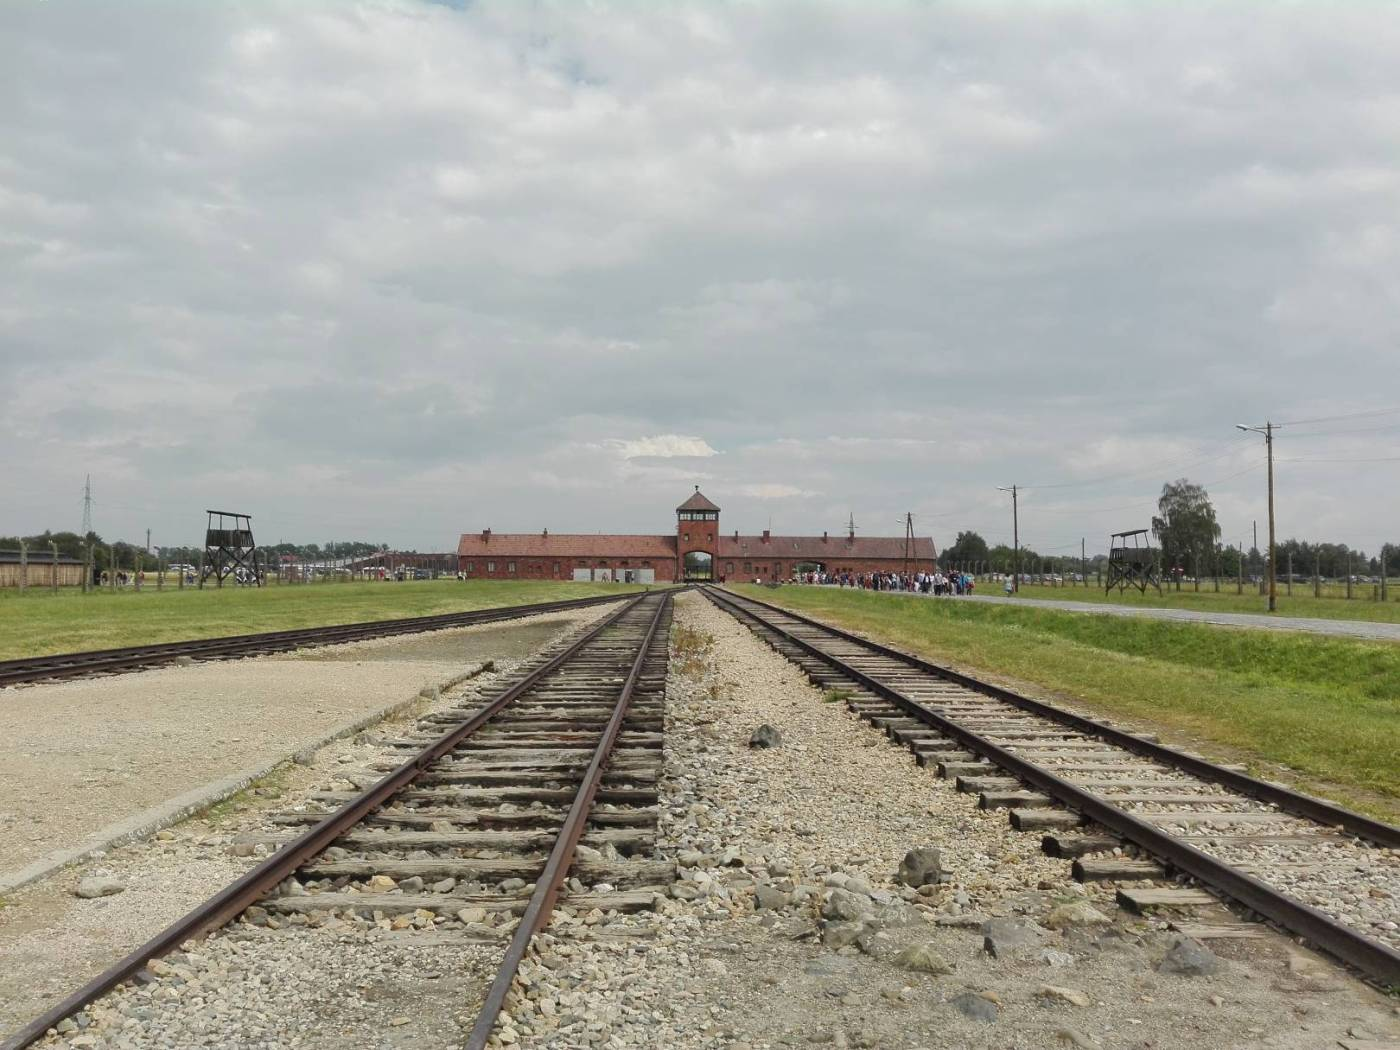 Auschwitz Birkenau Concentration Camp Main Gate